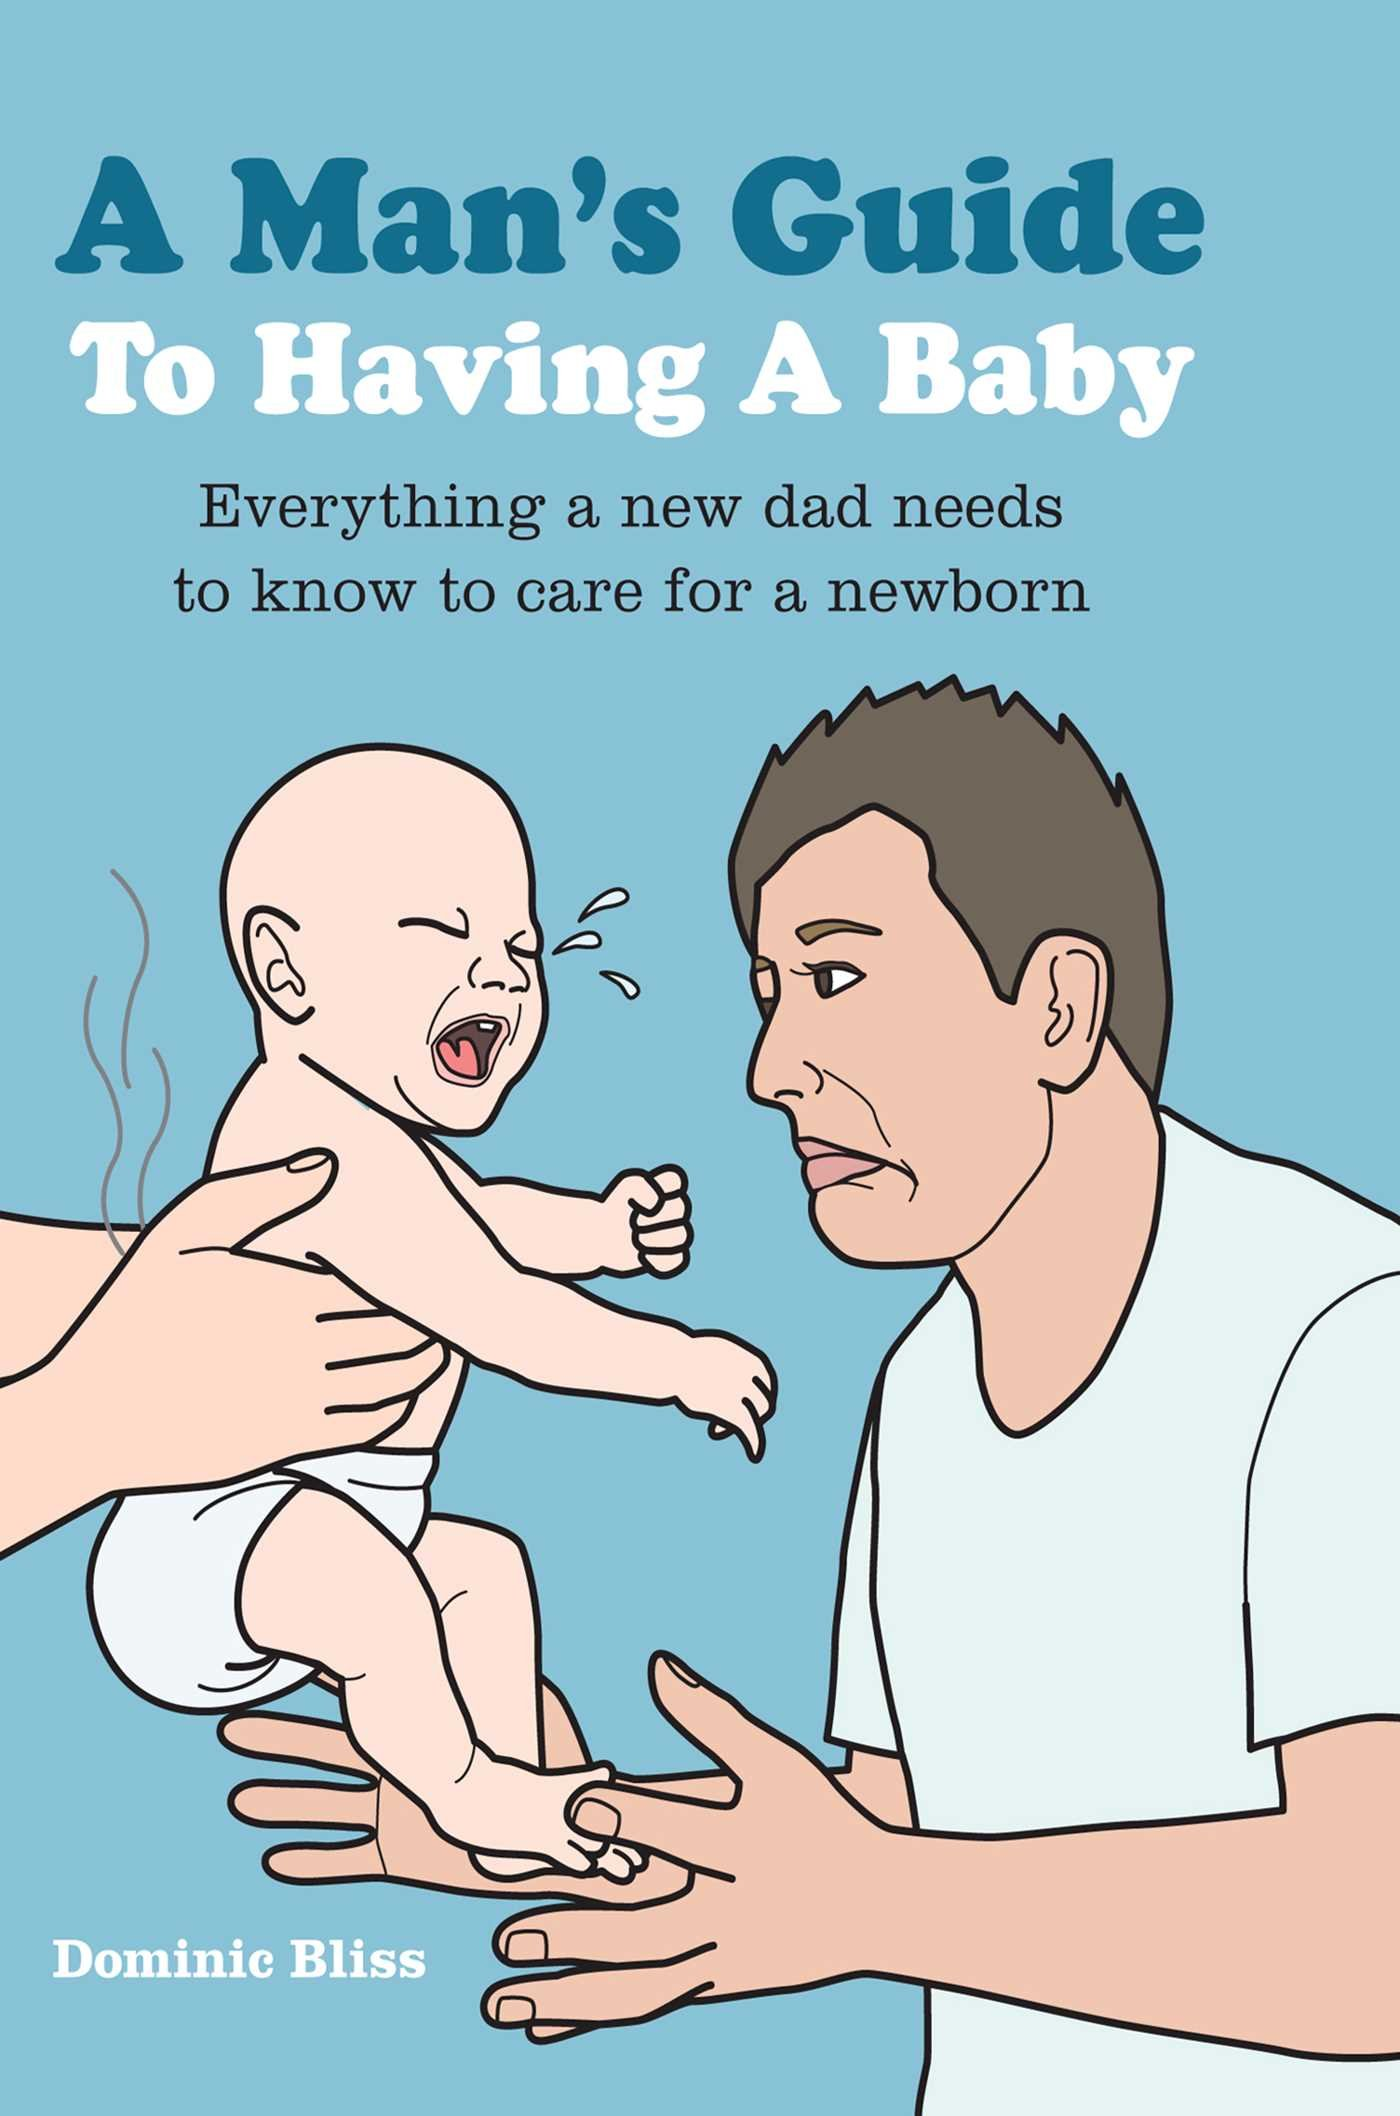 Read Online A Man's Guide to Having a Baby: Everything a new dad needs to know to care for a newborn ePub fb2 ebook